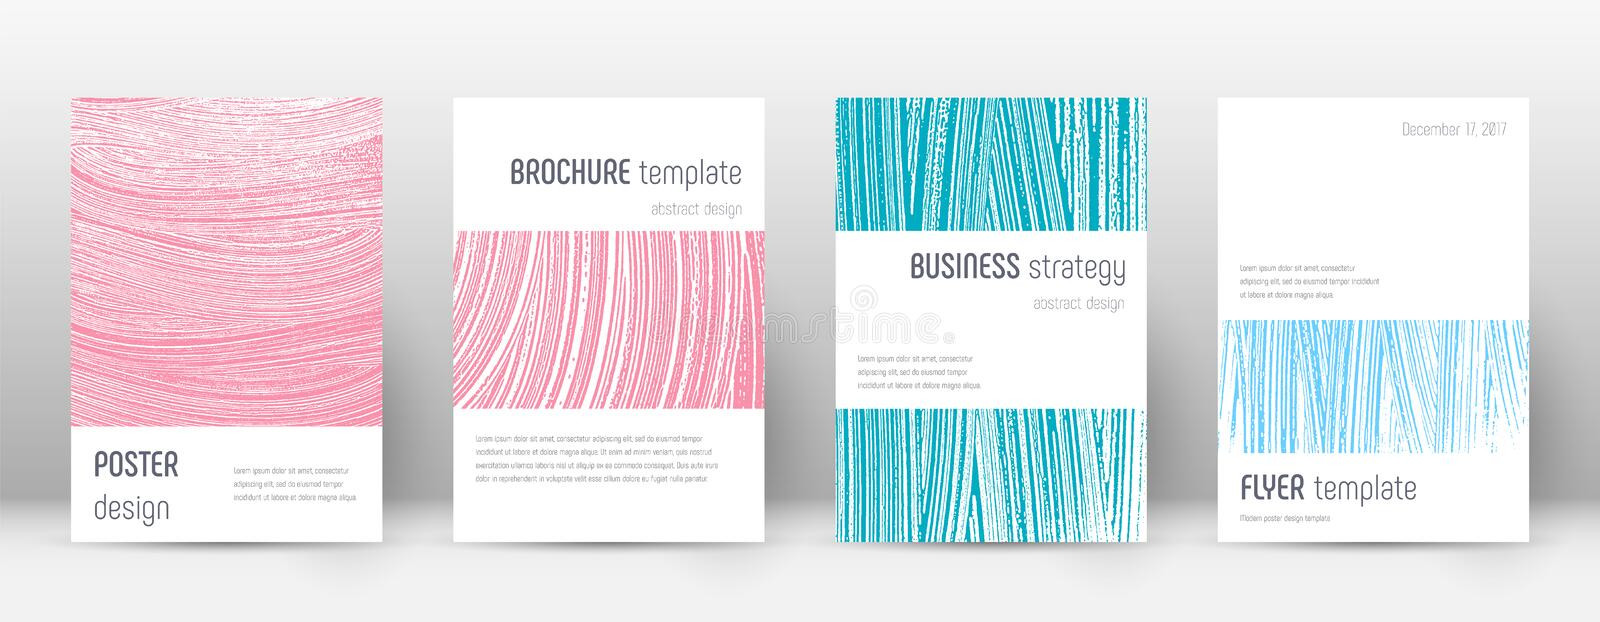 Cover page design template. Minimalistic brochure. Layout. Comely trendy abstract cover page. Pink and blue grunge texture background. Brilliant poster stock illustration